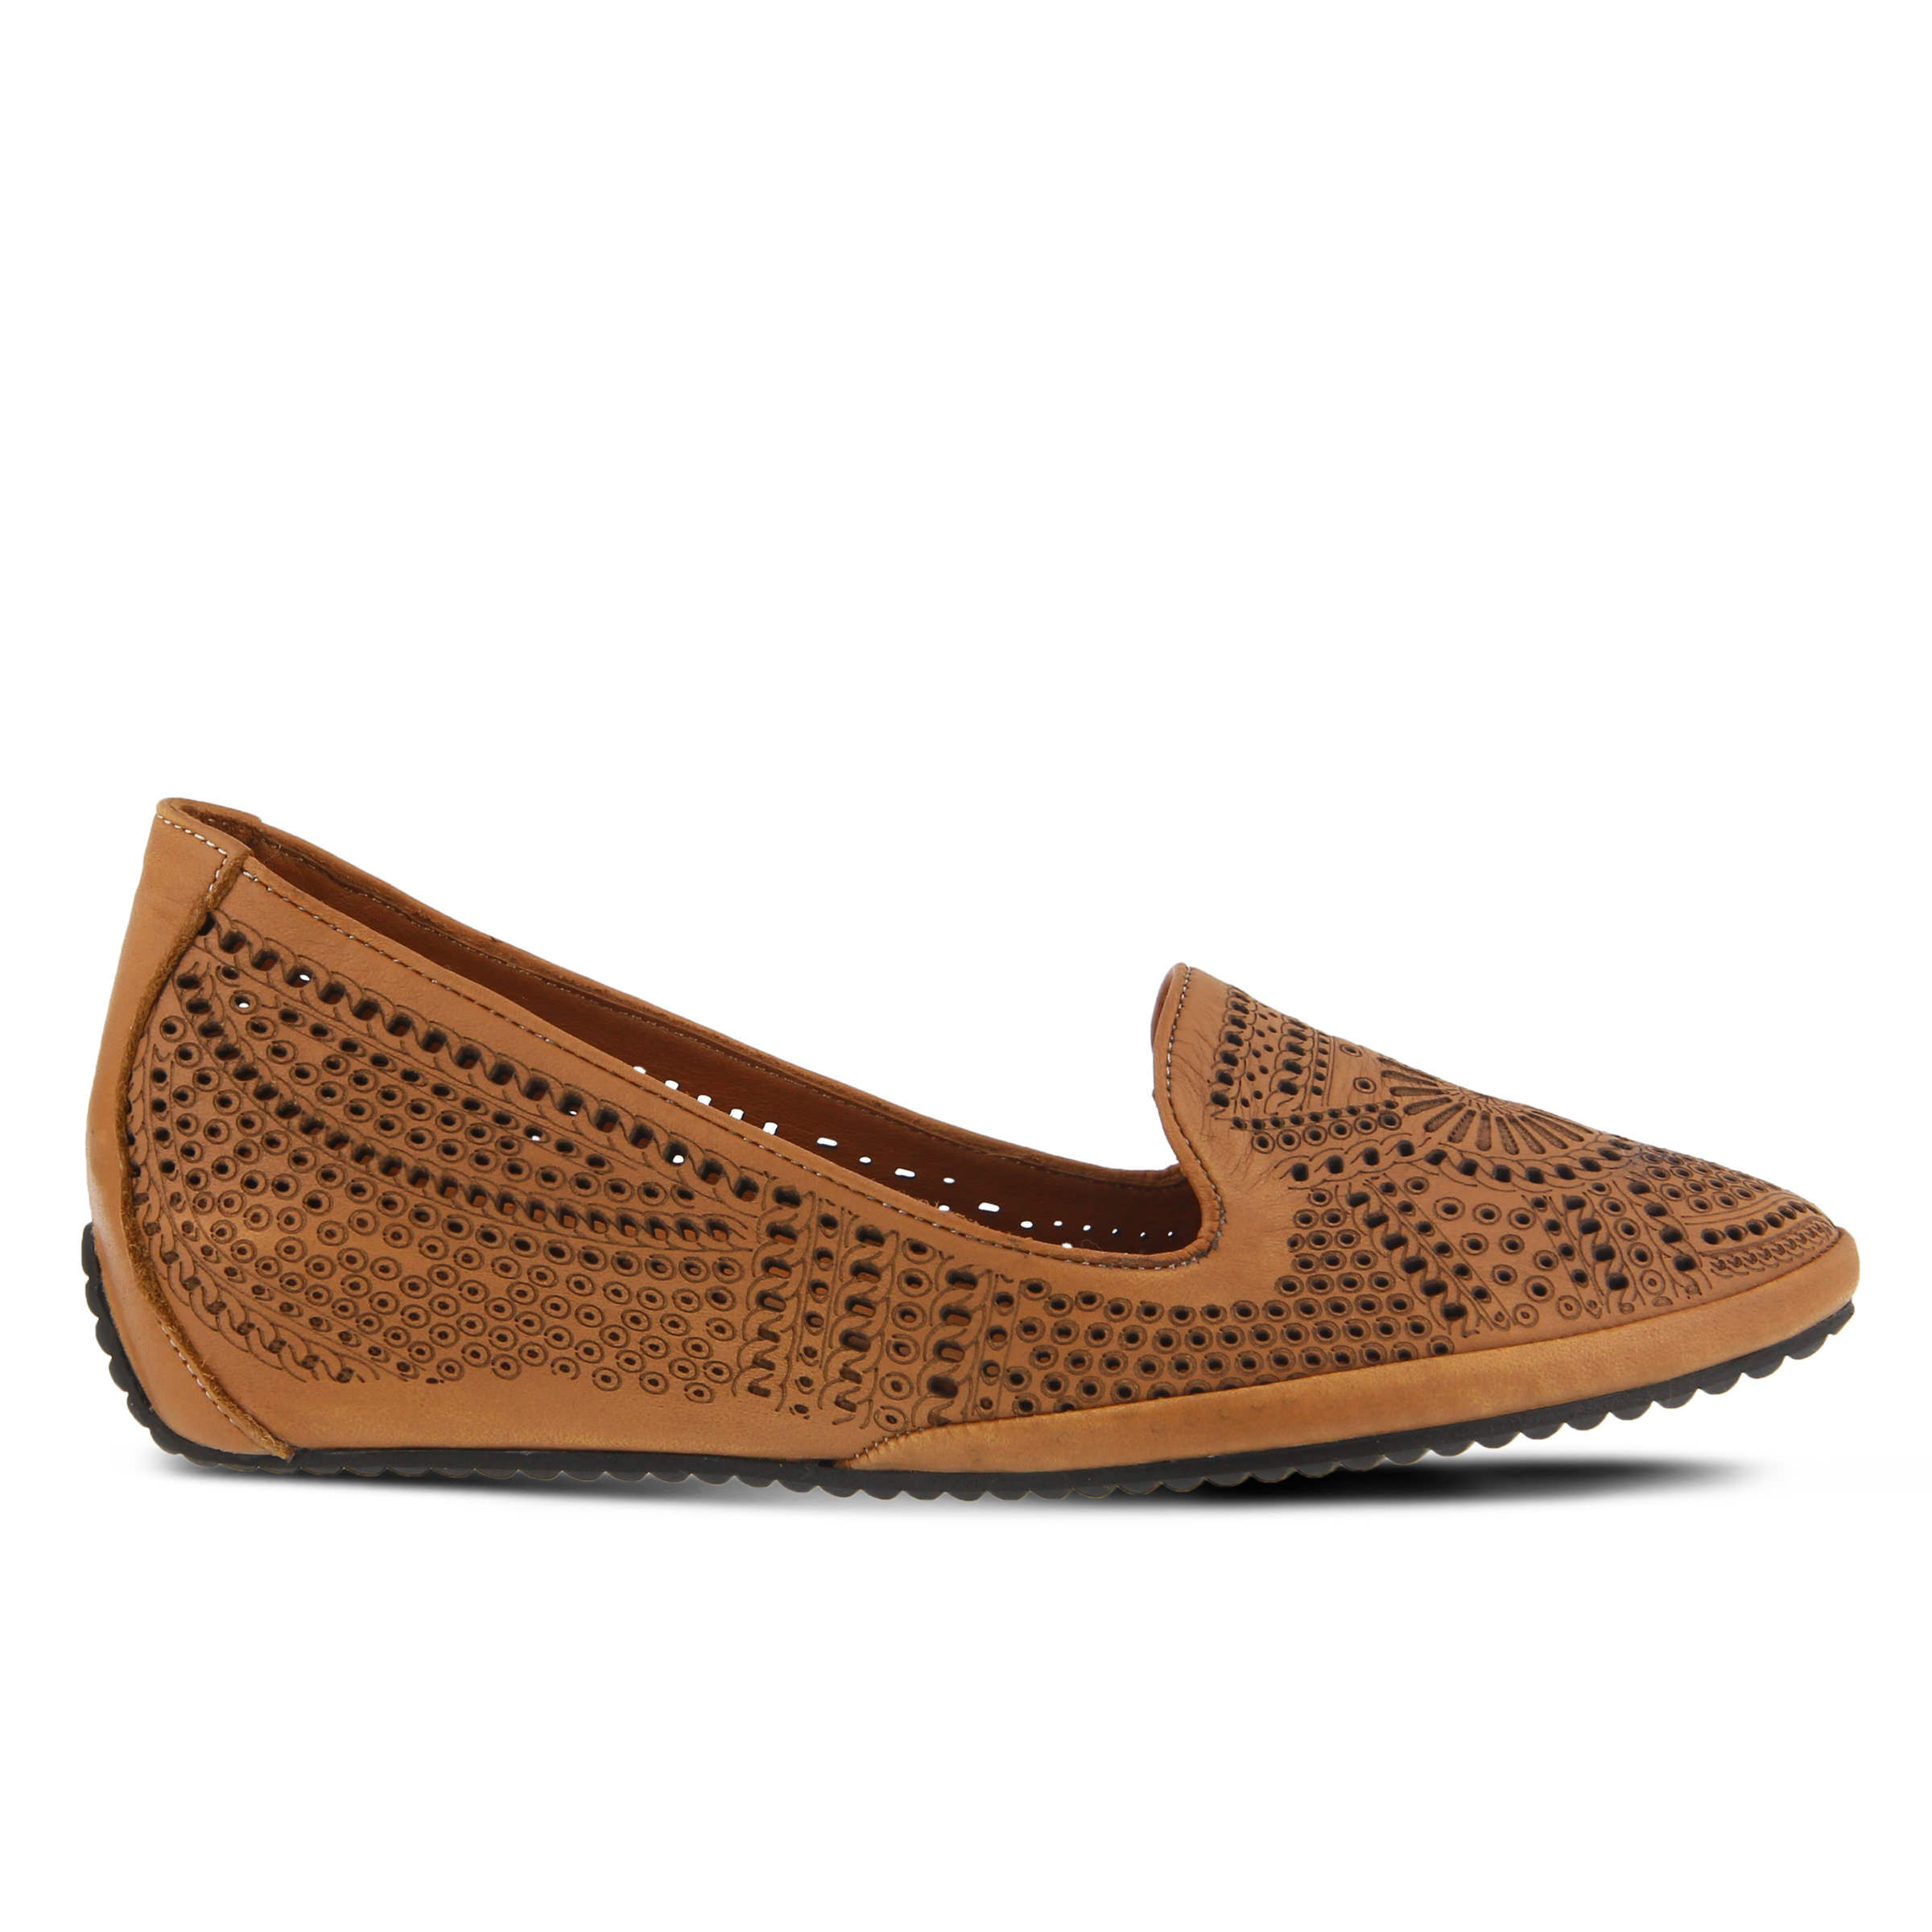 Economic Popular Women's SPRING STEP Shondra Flats Camel